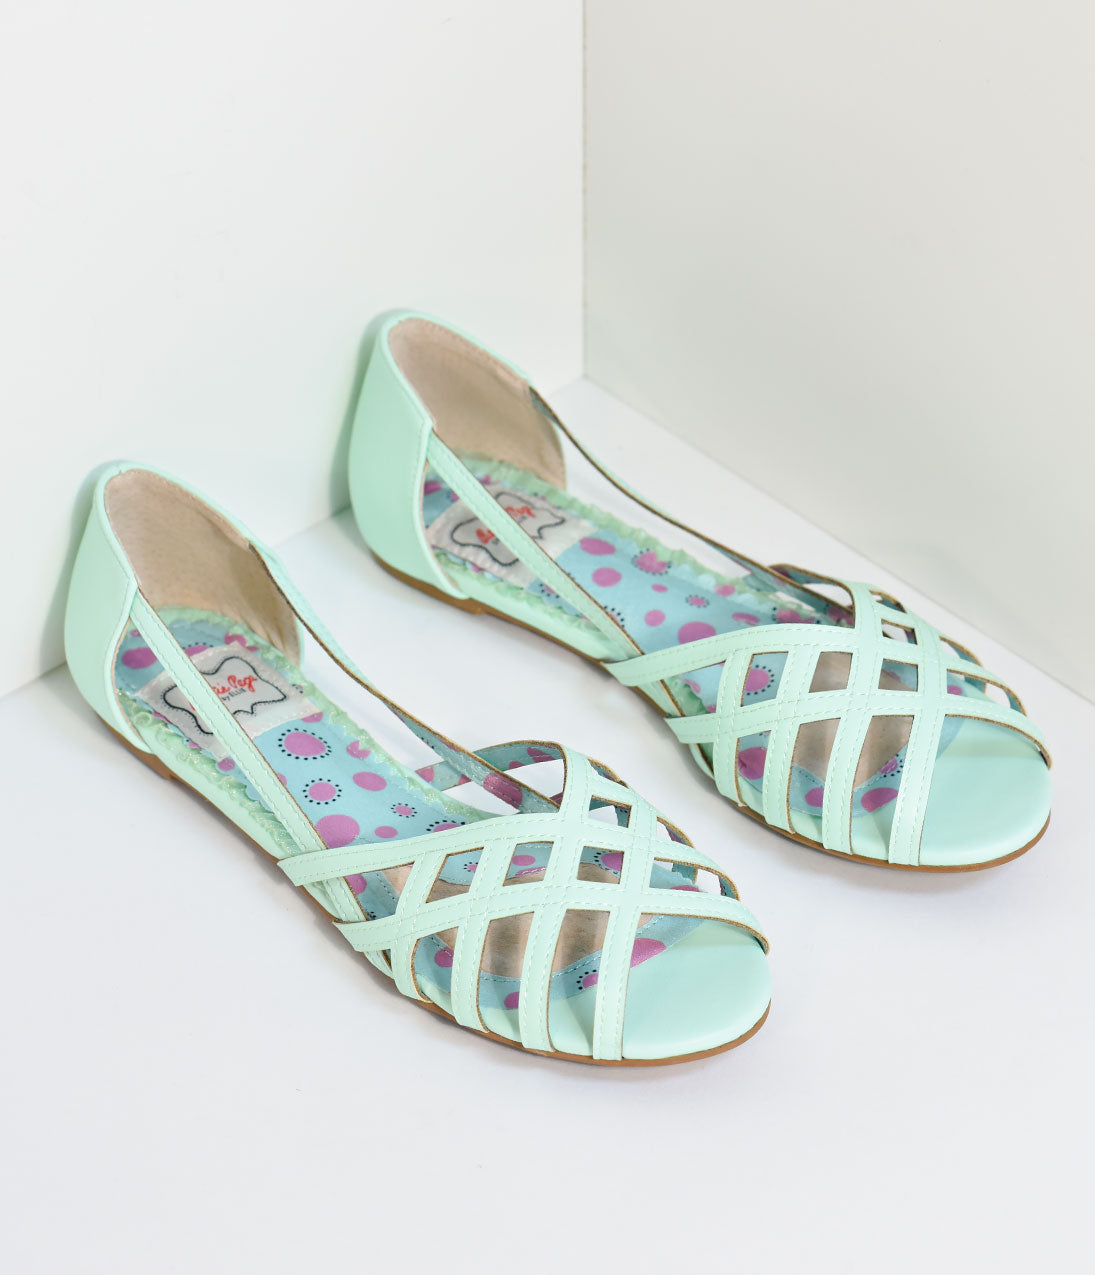 1950s Style Shoes | Heels, Flats, Saddle Shoes Bettie Page Mint Cut-Out Carren Flats $58.00 AT vintagedancer.com